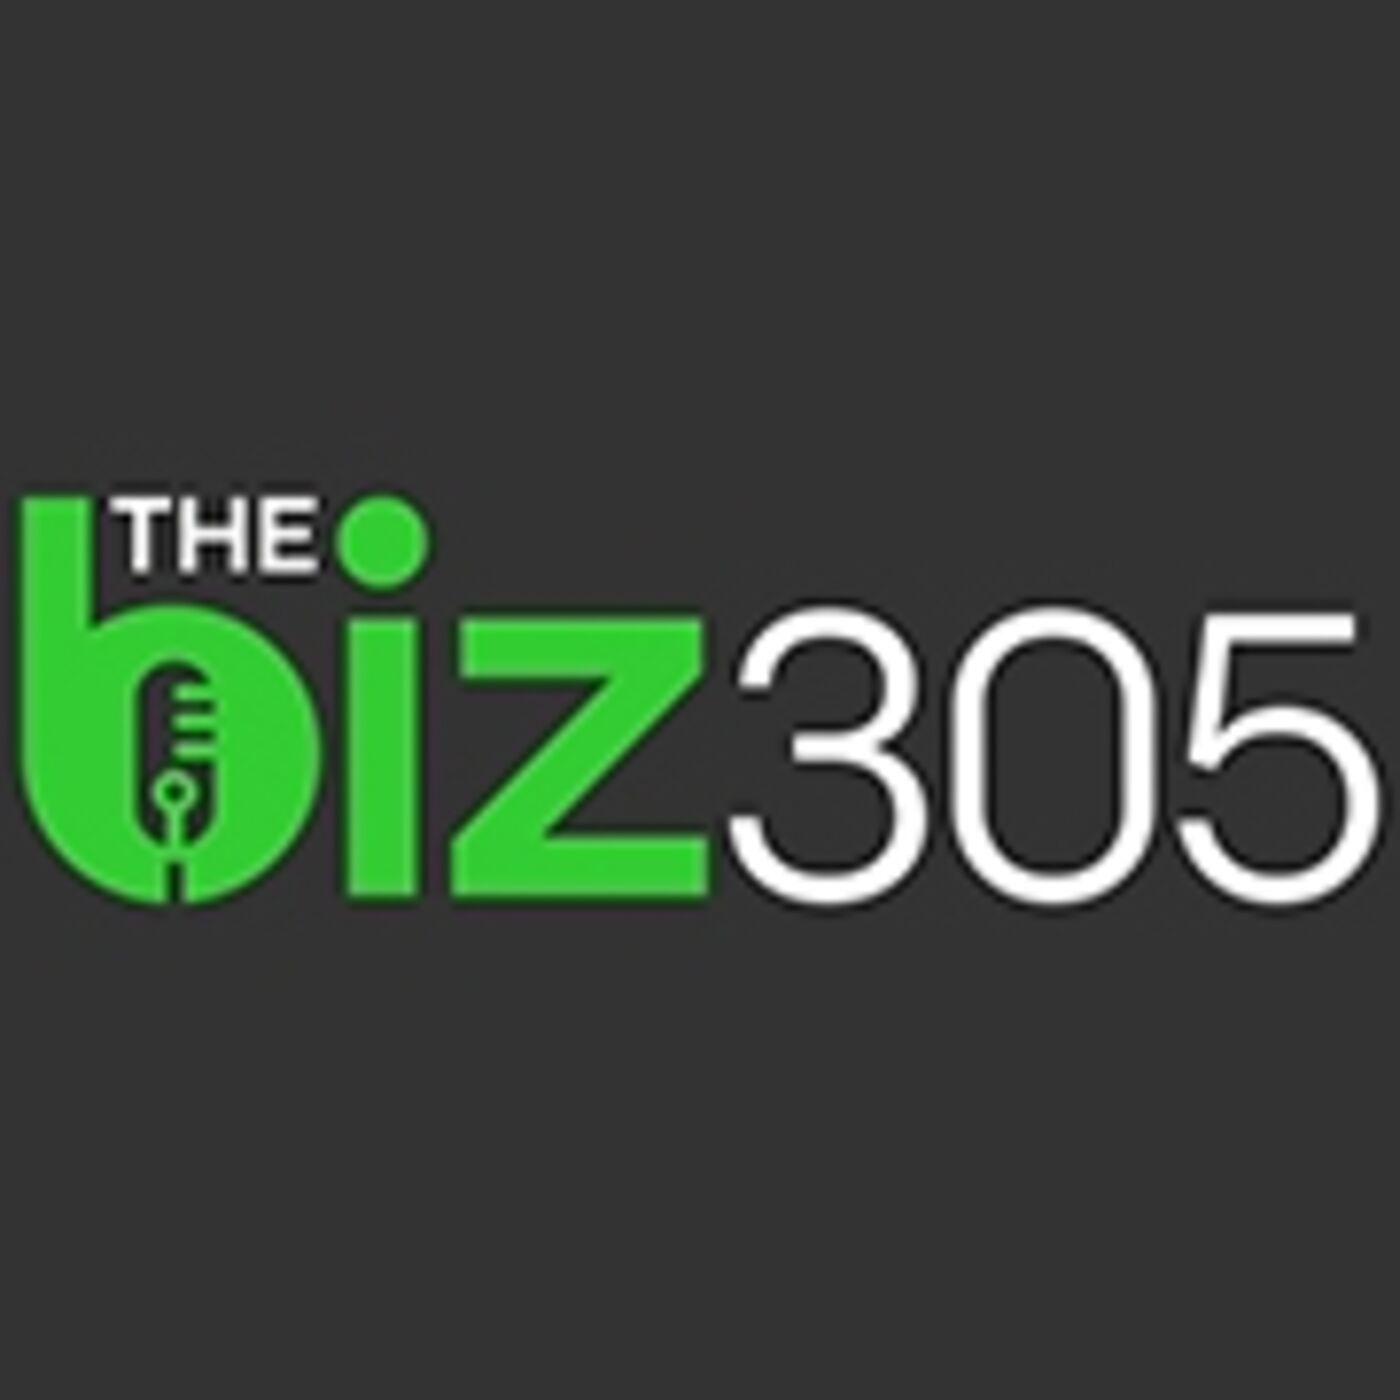 BIZ 305 features Social Center Adult Day Care - Ozzie Herrera   Whilly Bermudez